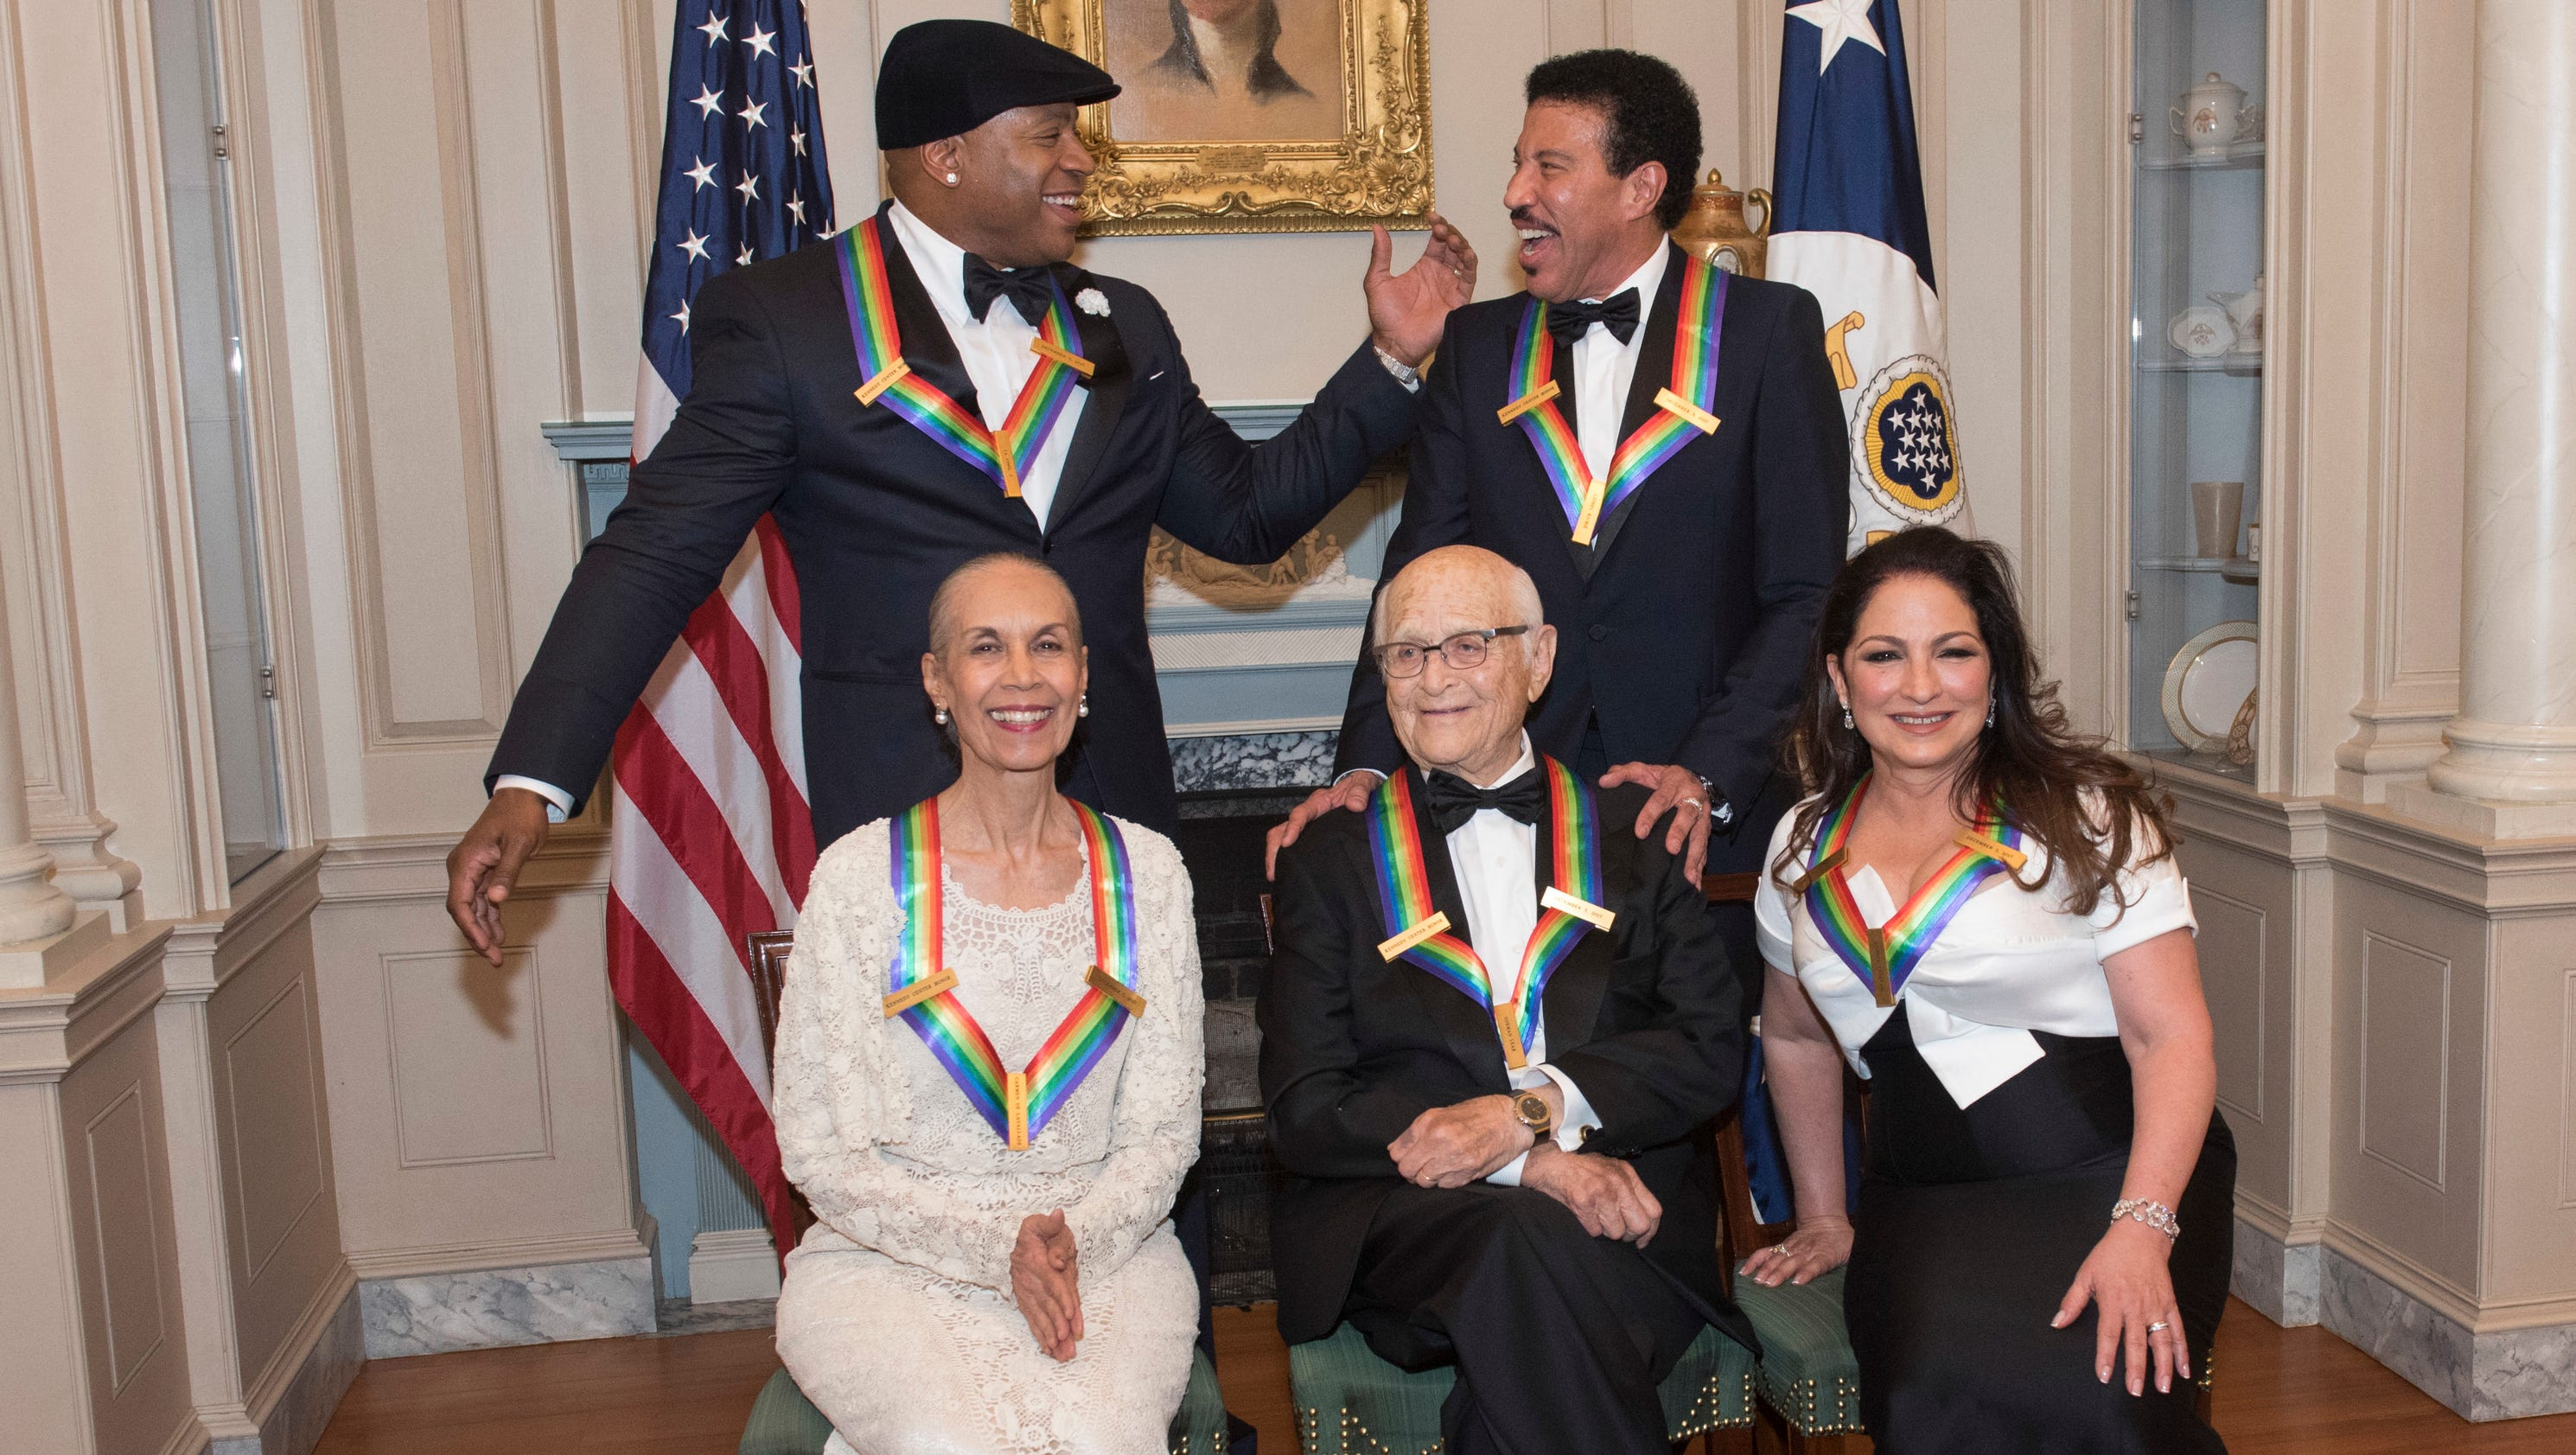 No Trumps, no problems at 2017 Kennedy Center Honors